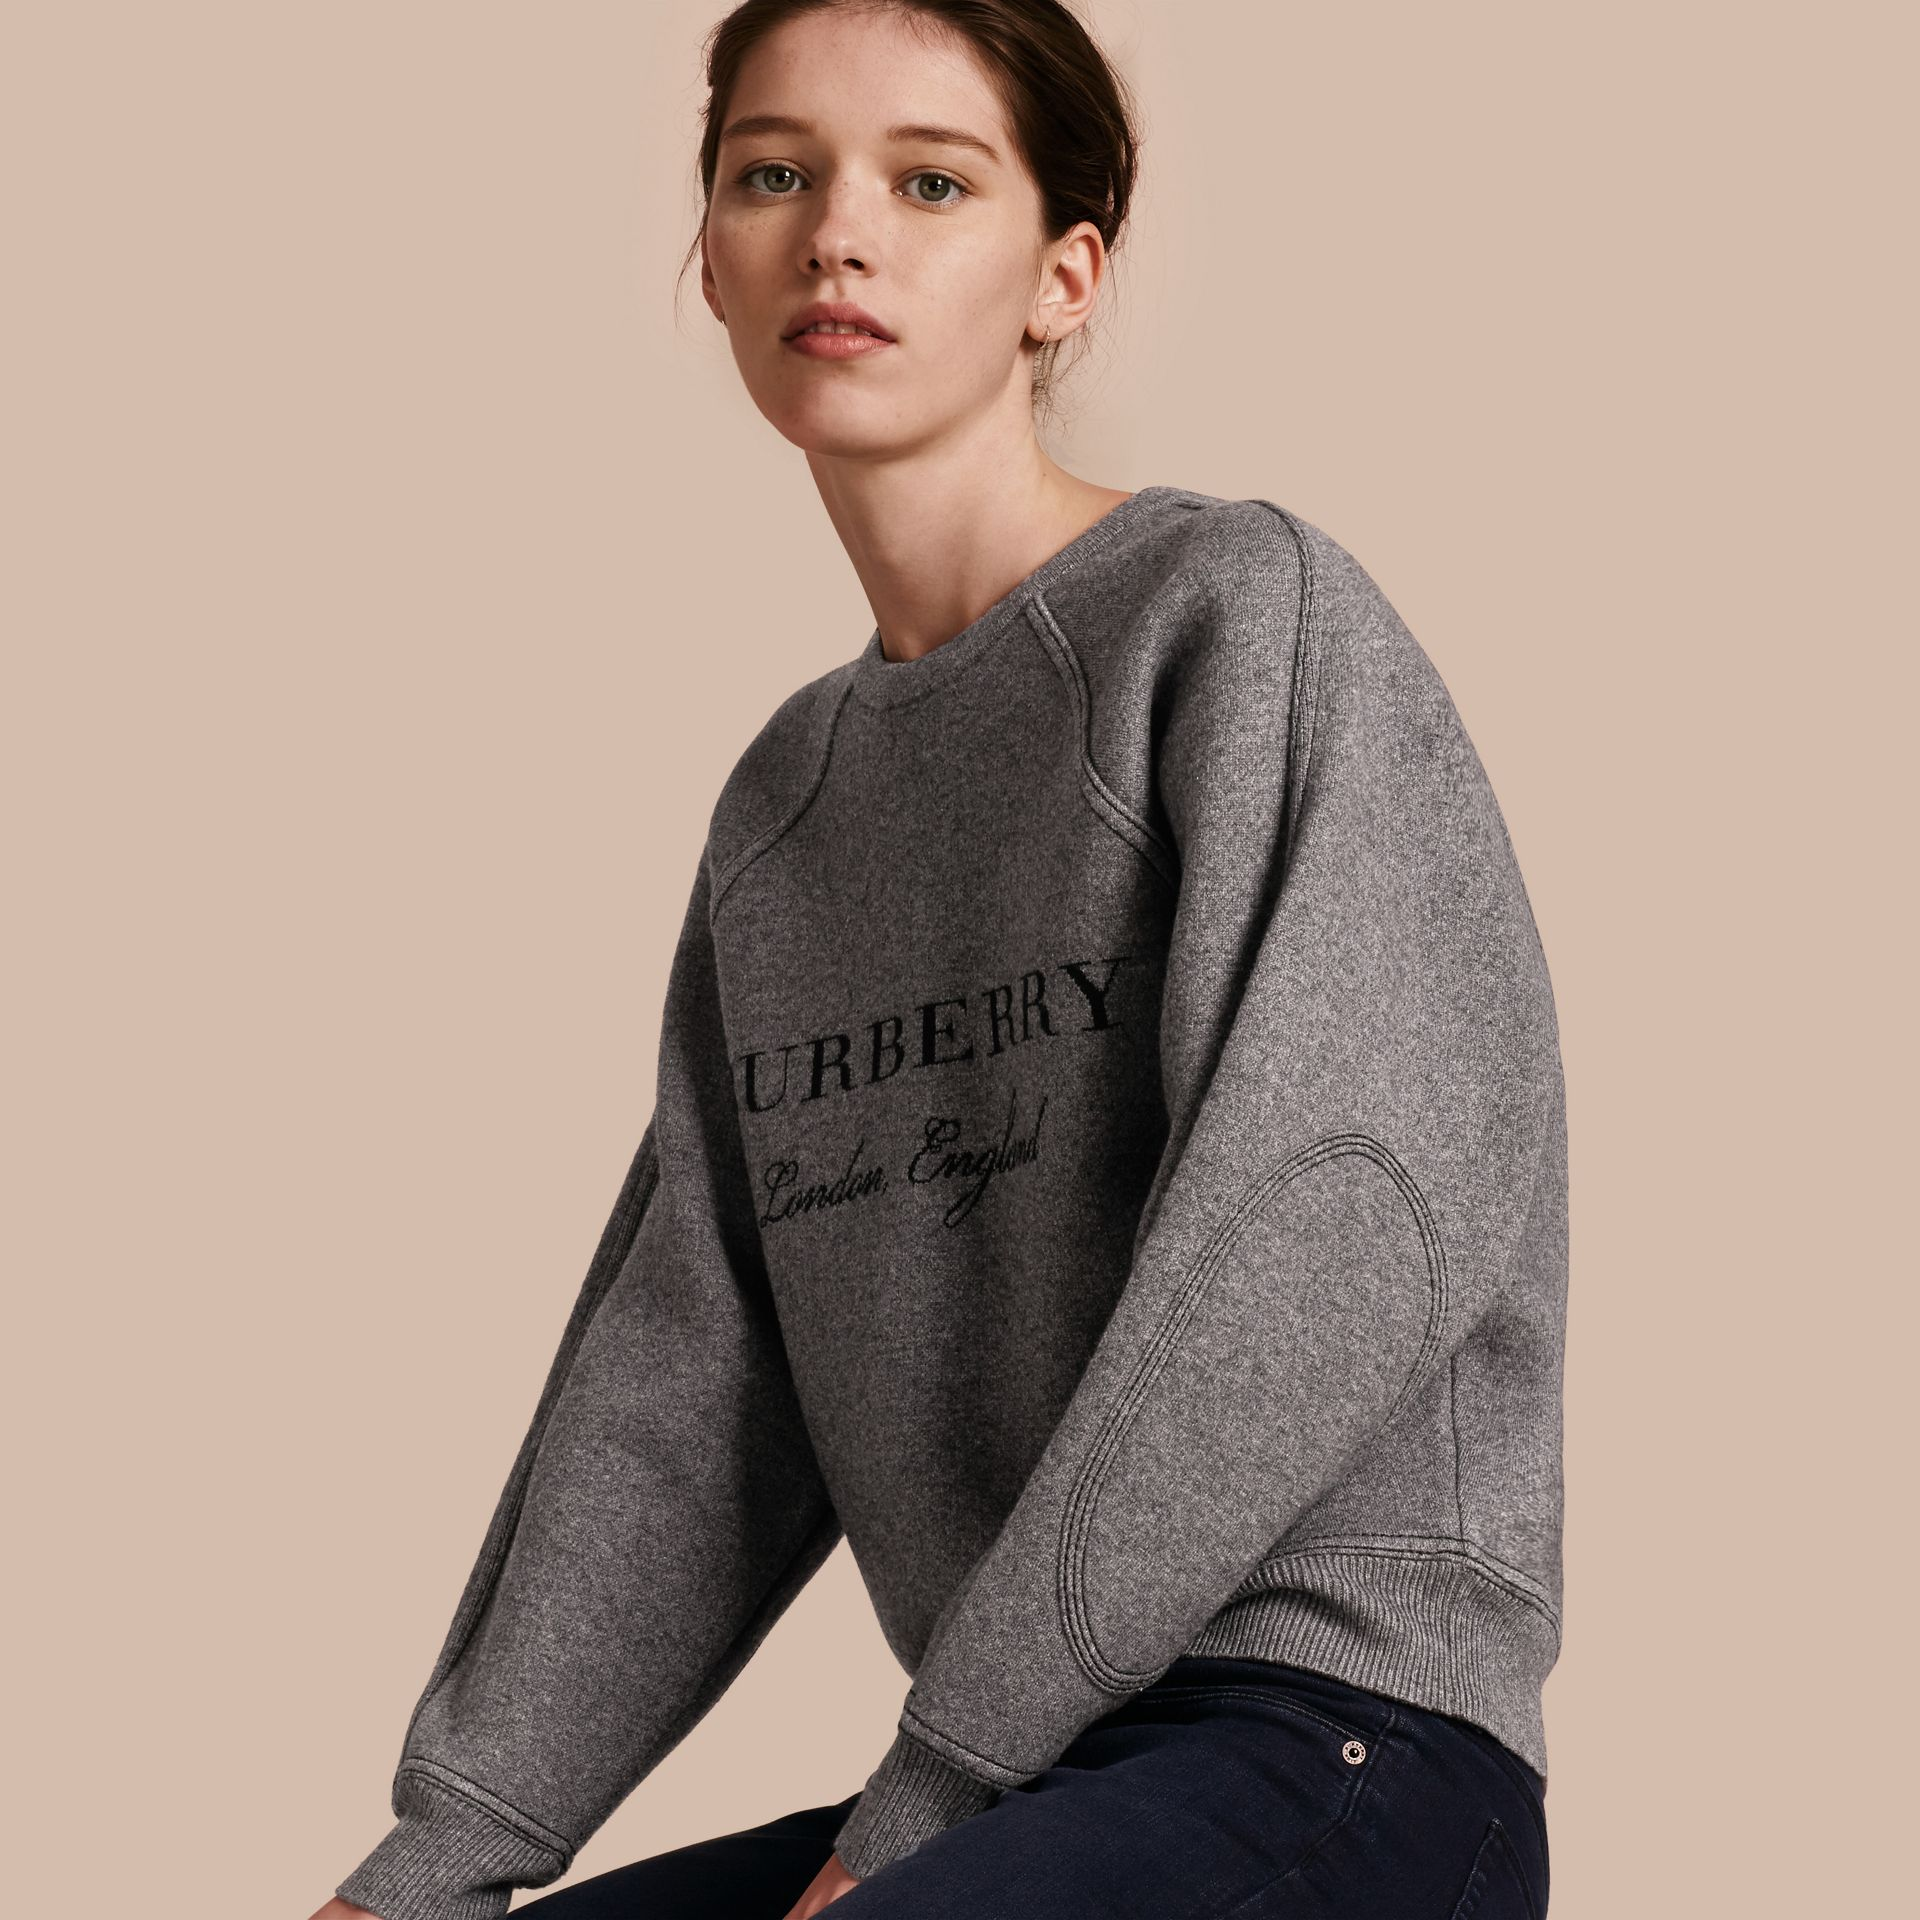 Topstitch Detail Wool Cashmere Blend Sweater in Mid Grey Melange - Women | Burberry - gallery image 1